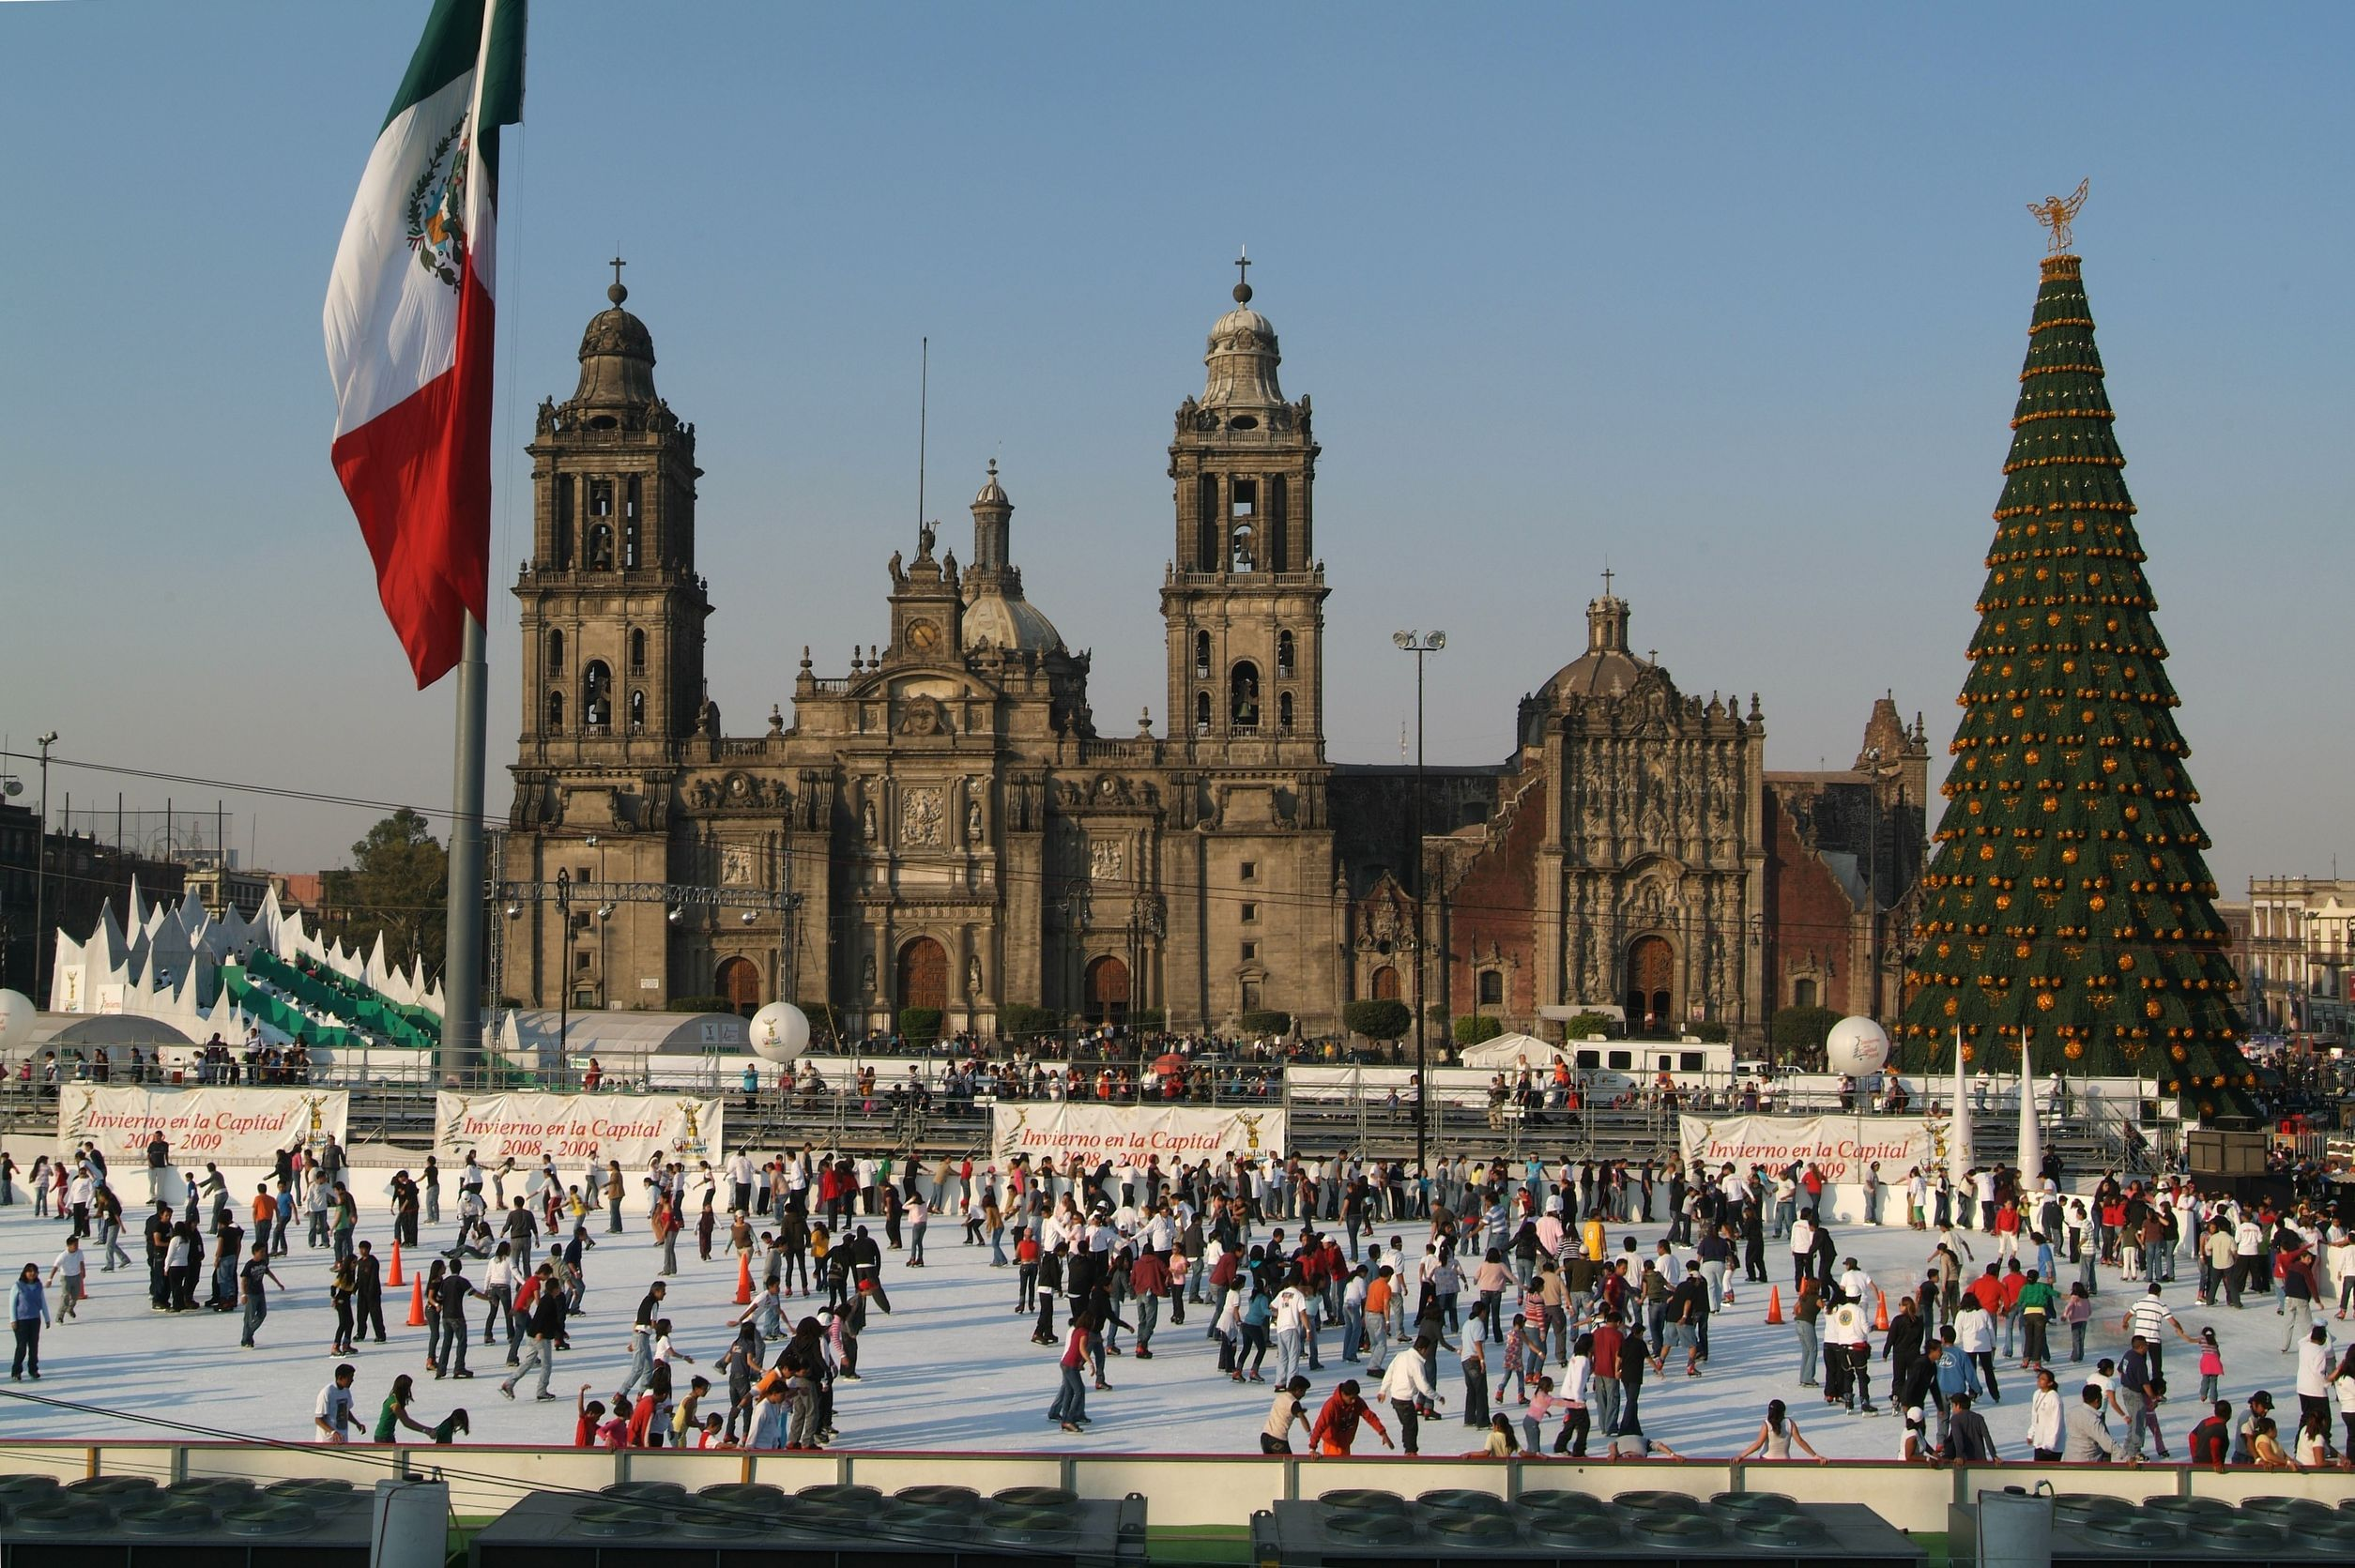 Download Quality Mexico City Wallpapers Cities [2509x1671] 50 2509x1671